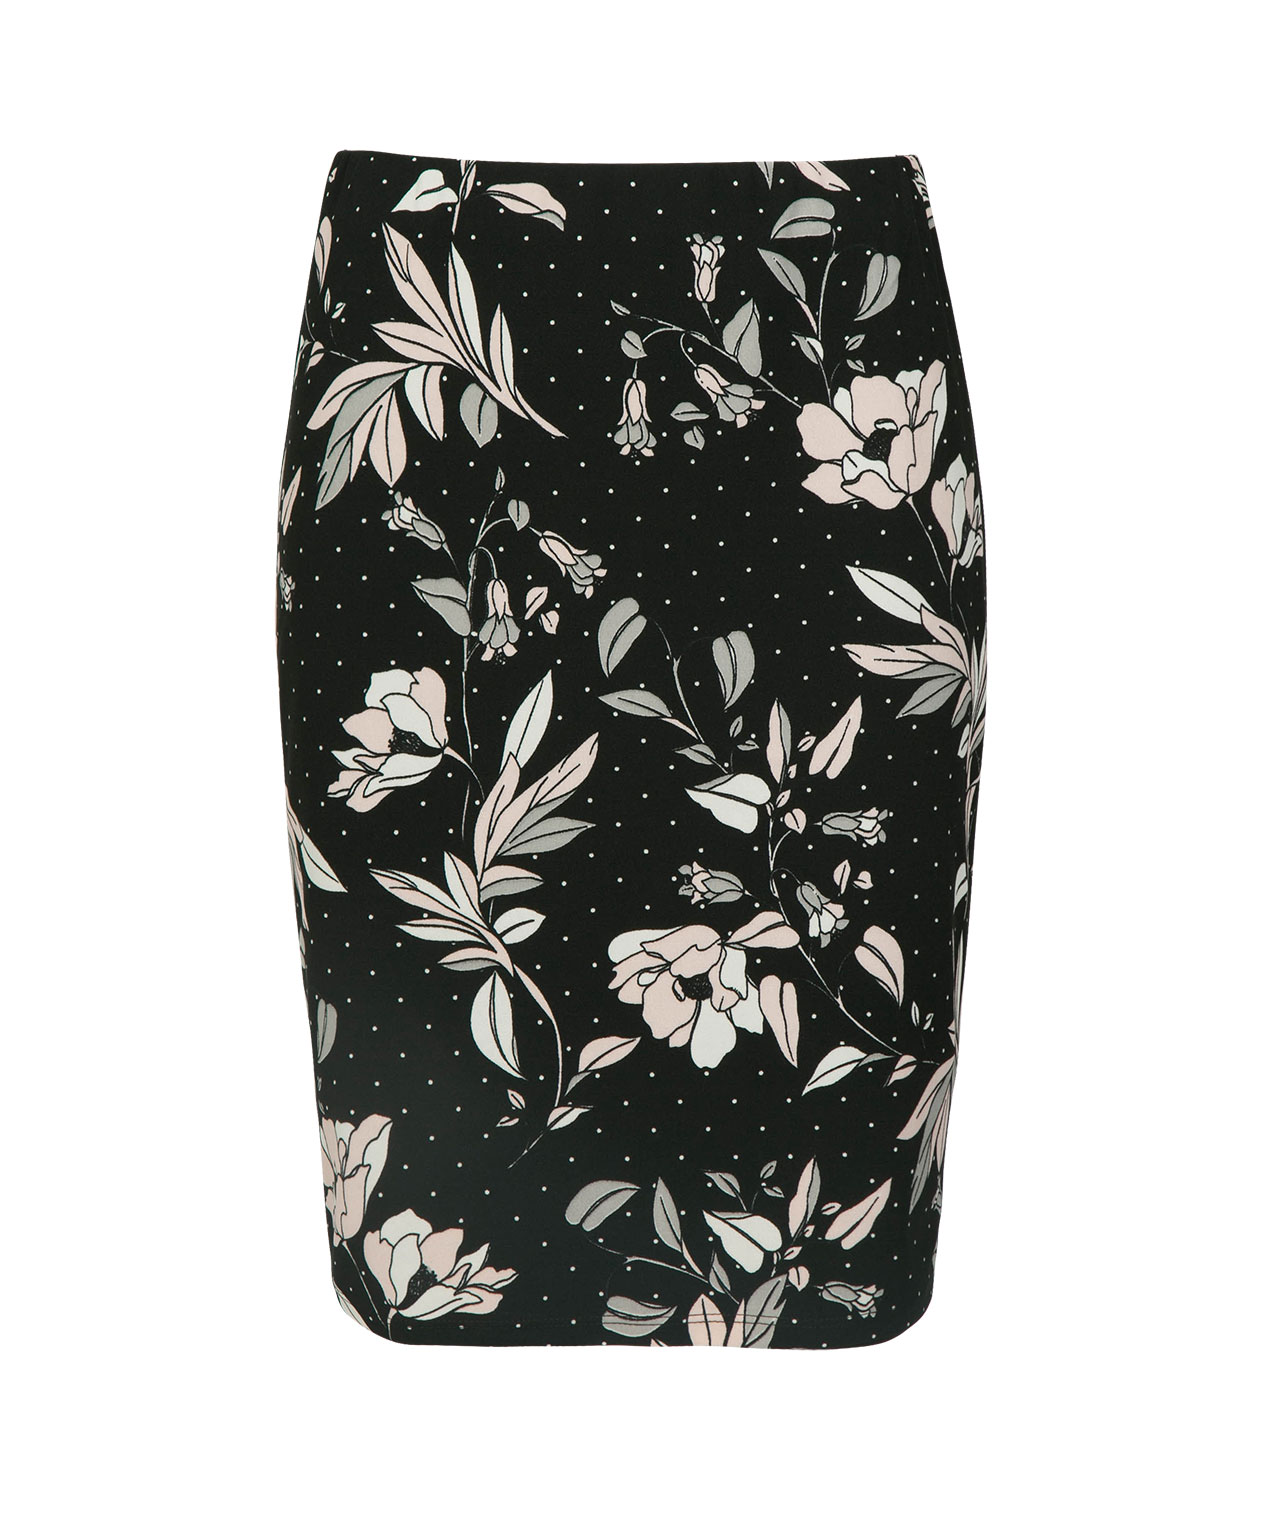 Floral Dot Pencil Skirt, Black/Pink/Grey, hi-res